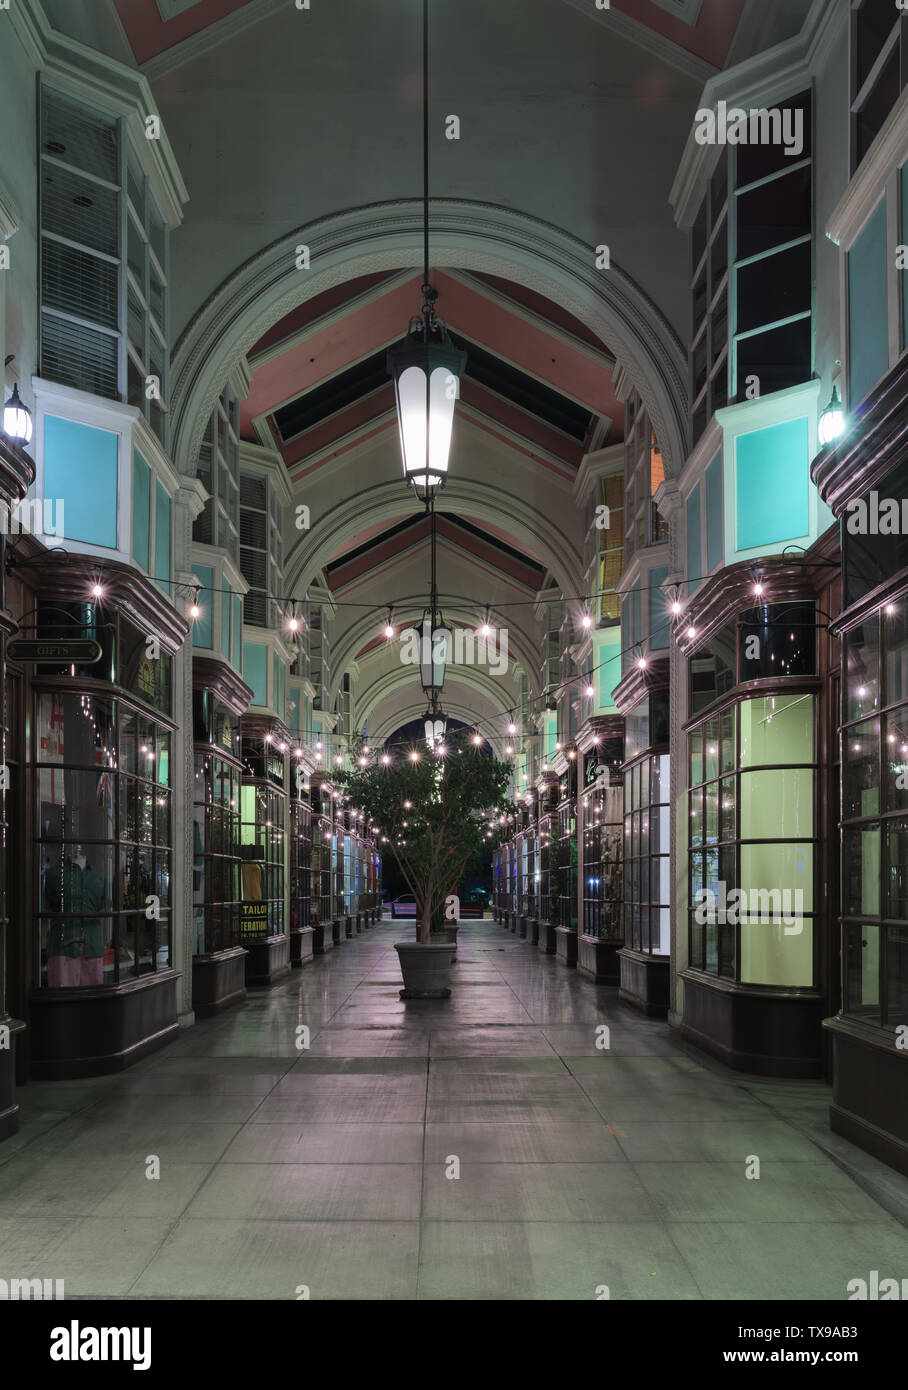 Image of the Burlington Arcade on South Lake Avenue.  The Arcade is a nearly spot-on facsimile of its namesake shopping center in London. Stock Photo